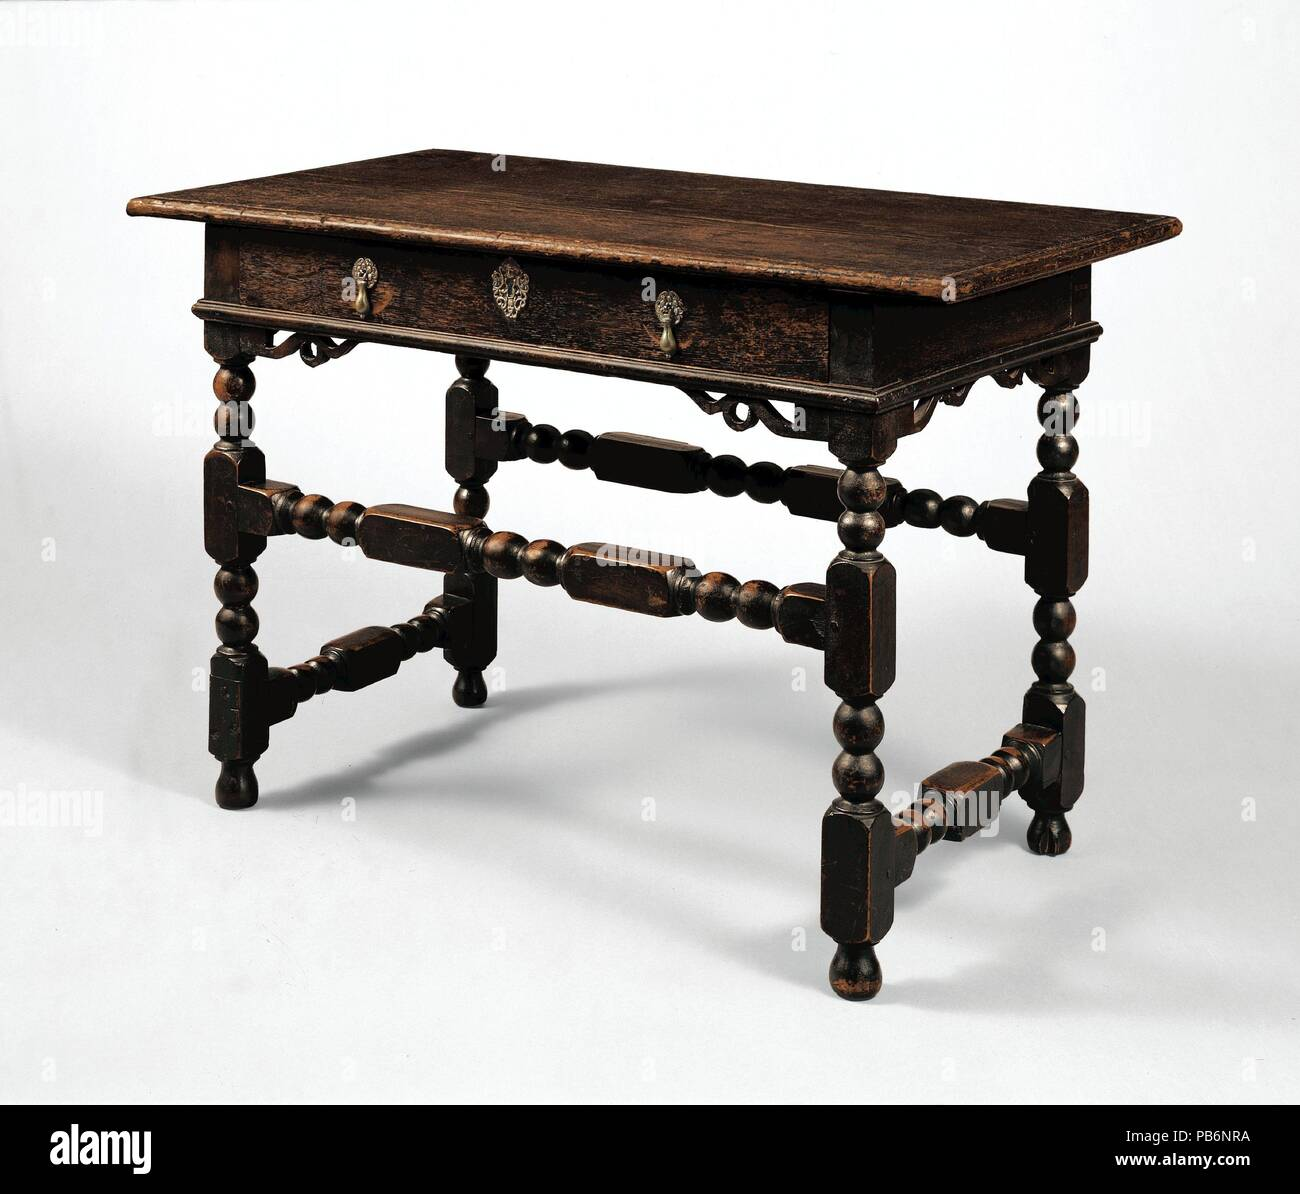 Joined table with drawer  Culture: American  Dimensions: 26 1/2 x 40